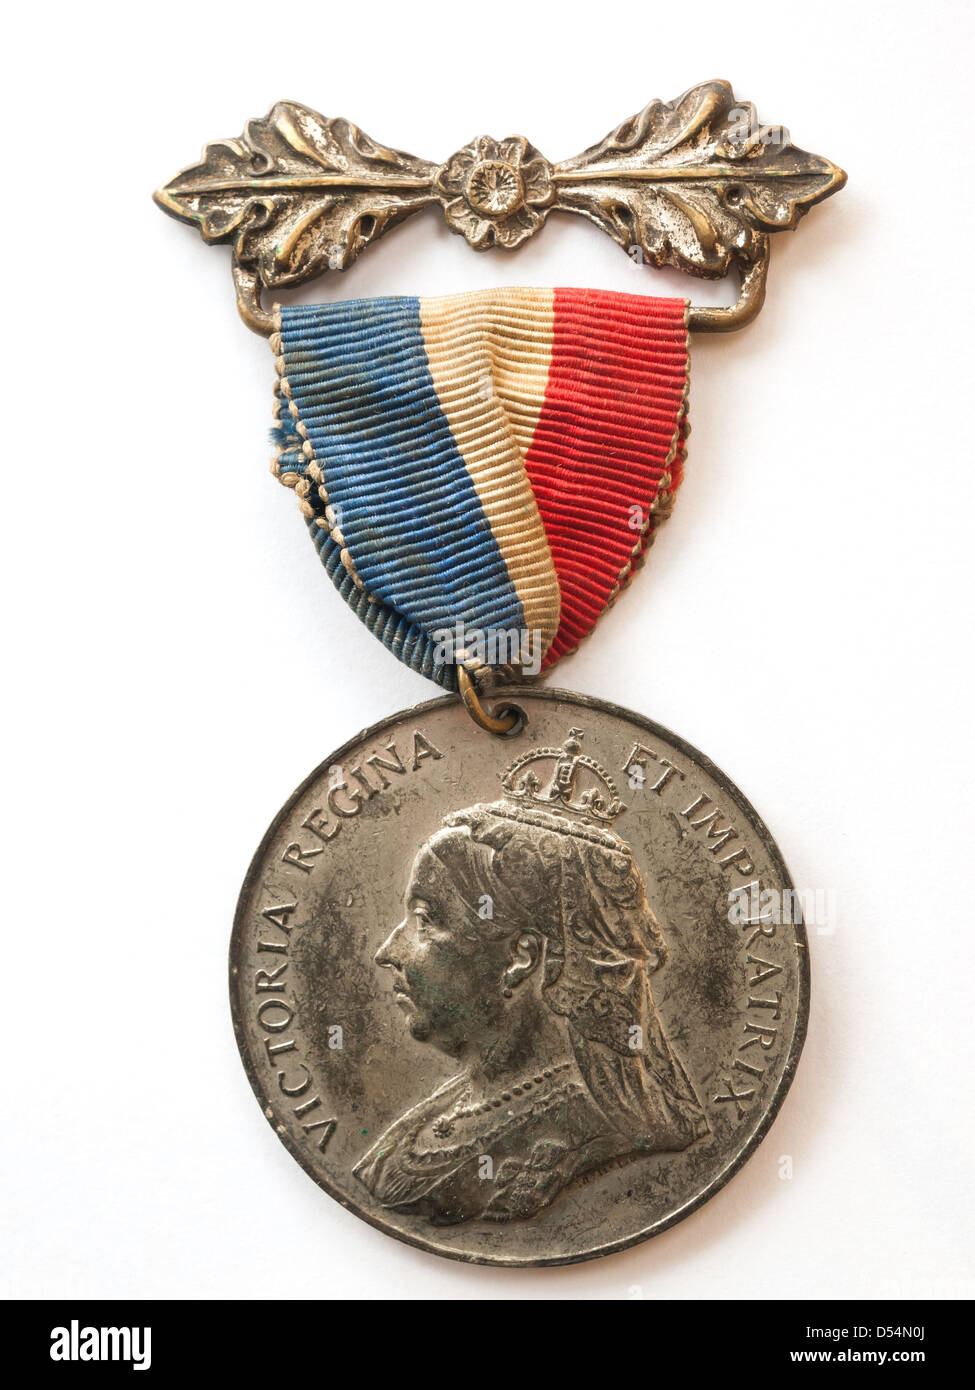 A Commemorative Medal issued in 1897 for the Diamond Jubilee of Victoria, British Queen and Empress of India - Stock Image